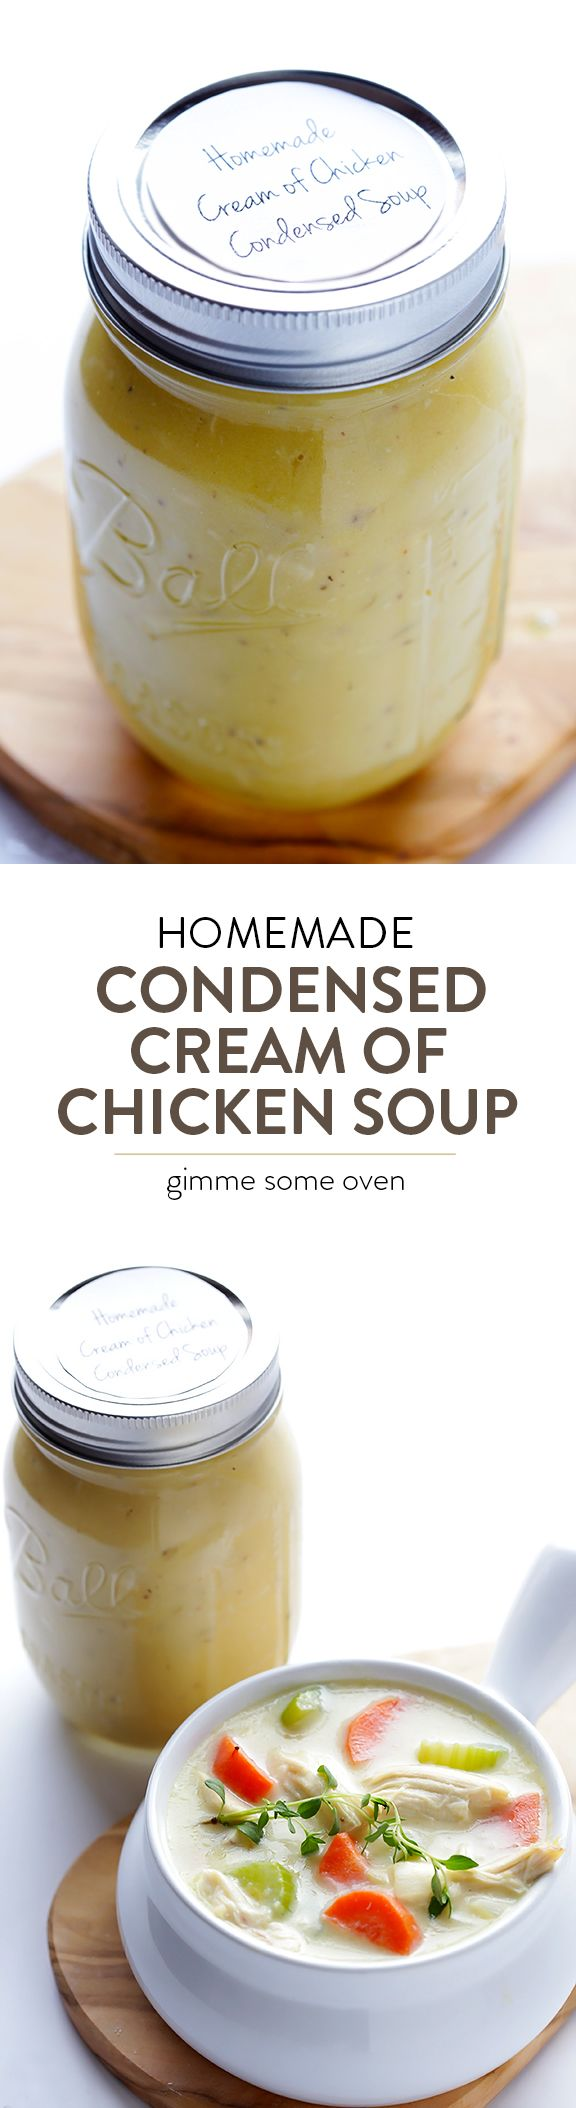 ... for Soups on Pinterest | Soups, Cream of chicken soup and Navy bean